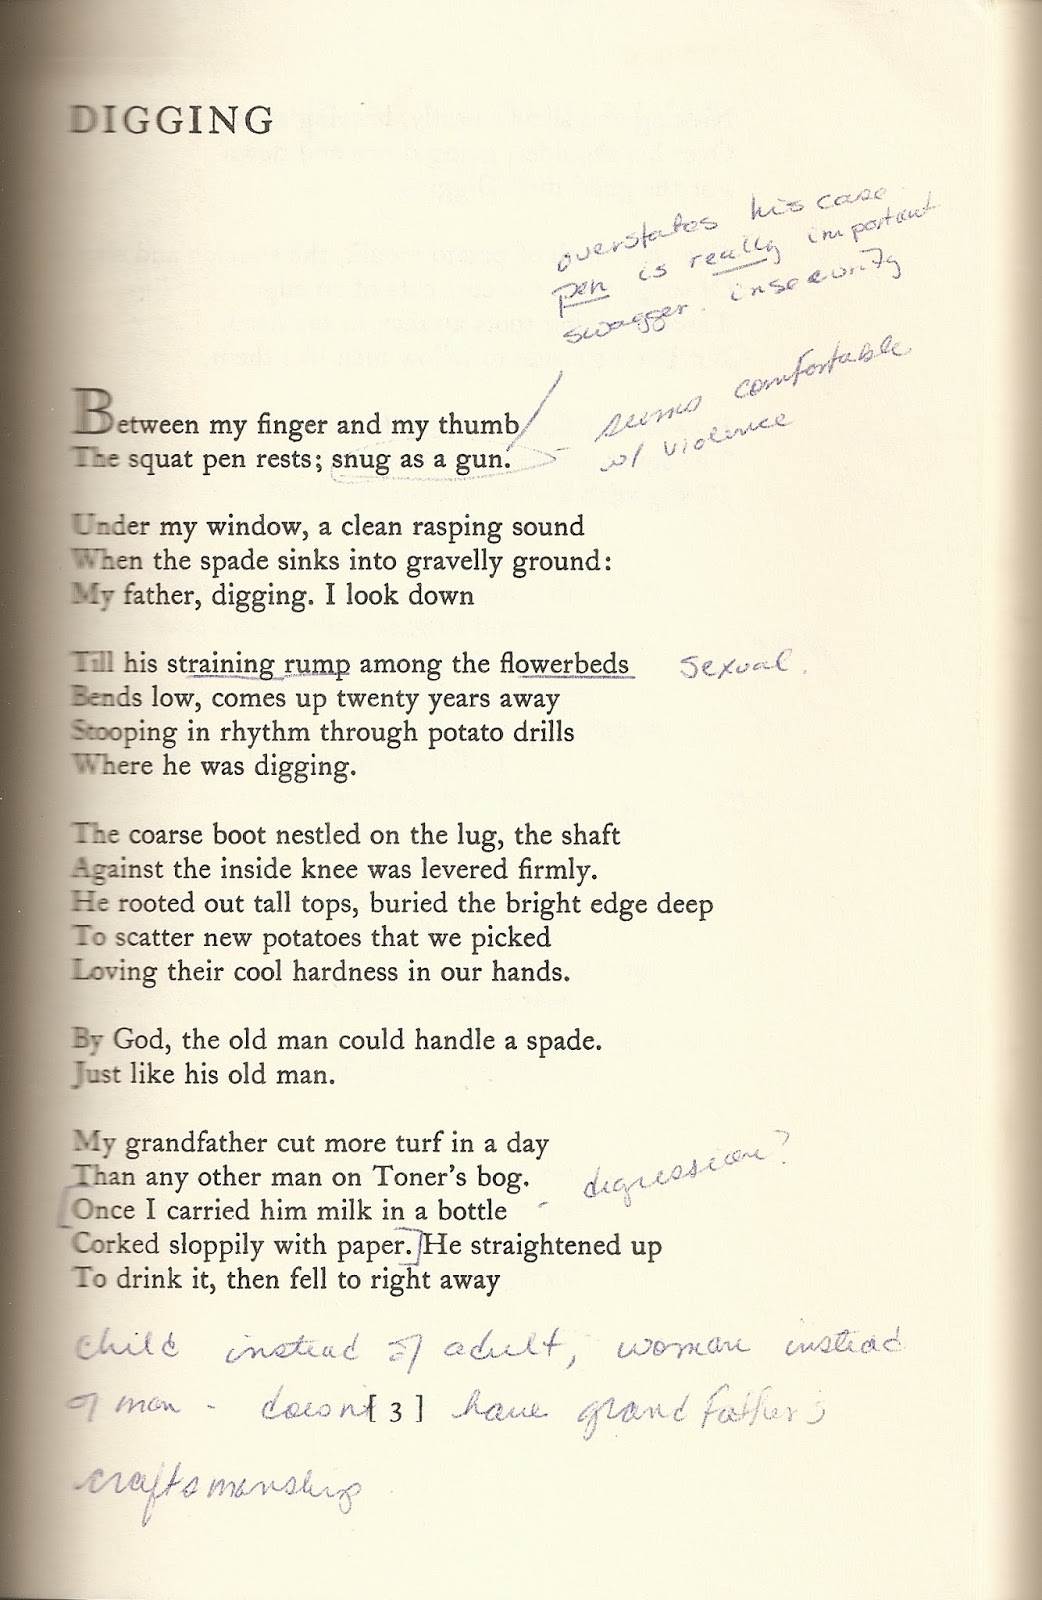 wrecklamation seamus and me digging was the first poem of seamus heaney s that i experienced my class notes from my year at trinity college in dublin really make me wonder why i ever